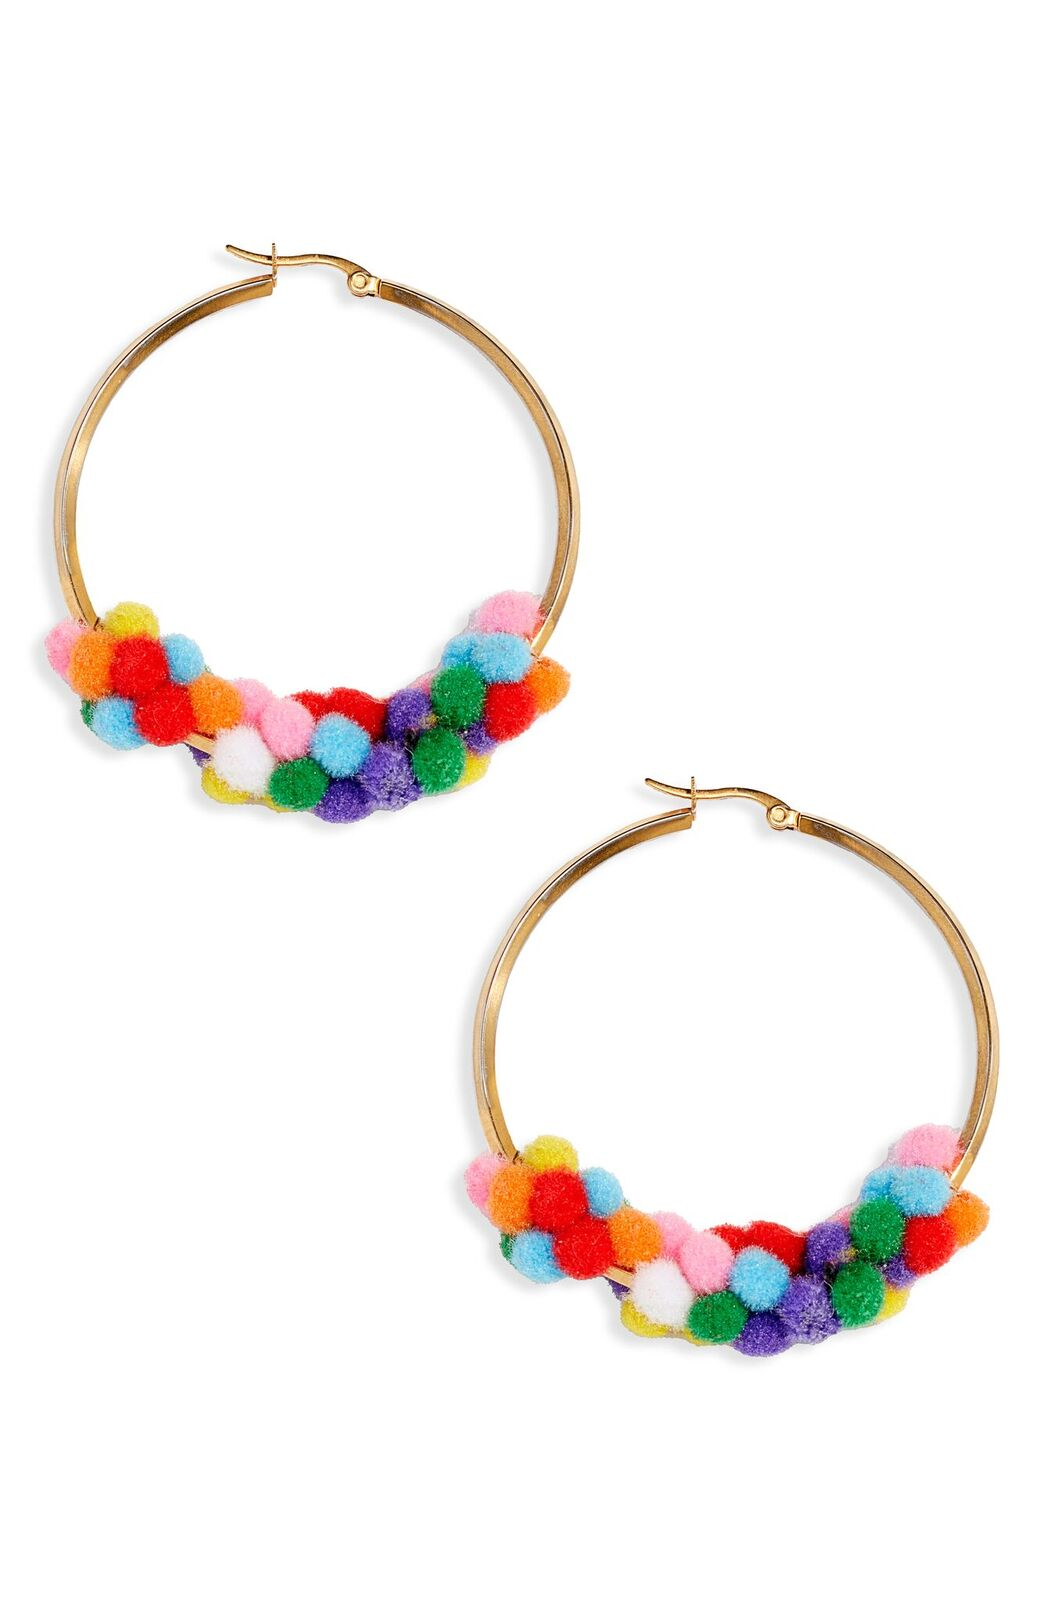 These hoops are super funky and trendy,{ } $230 at Nordstrom. (Image: Nordstrom){ }